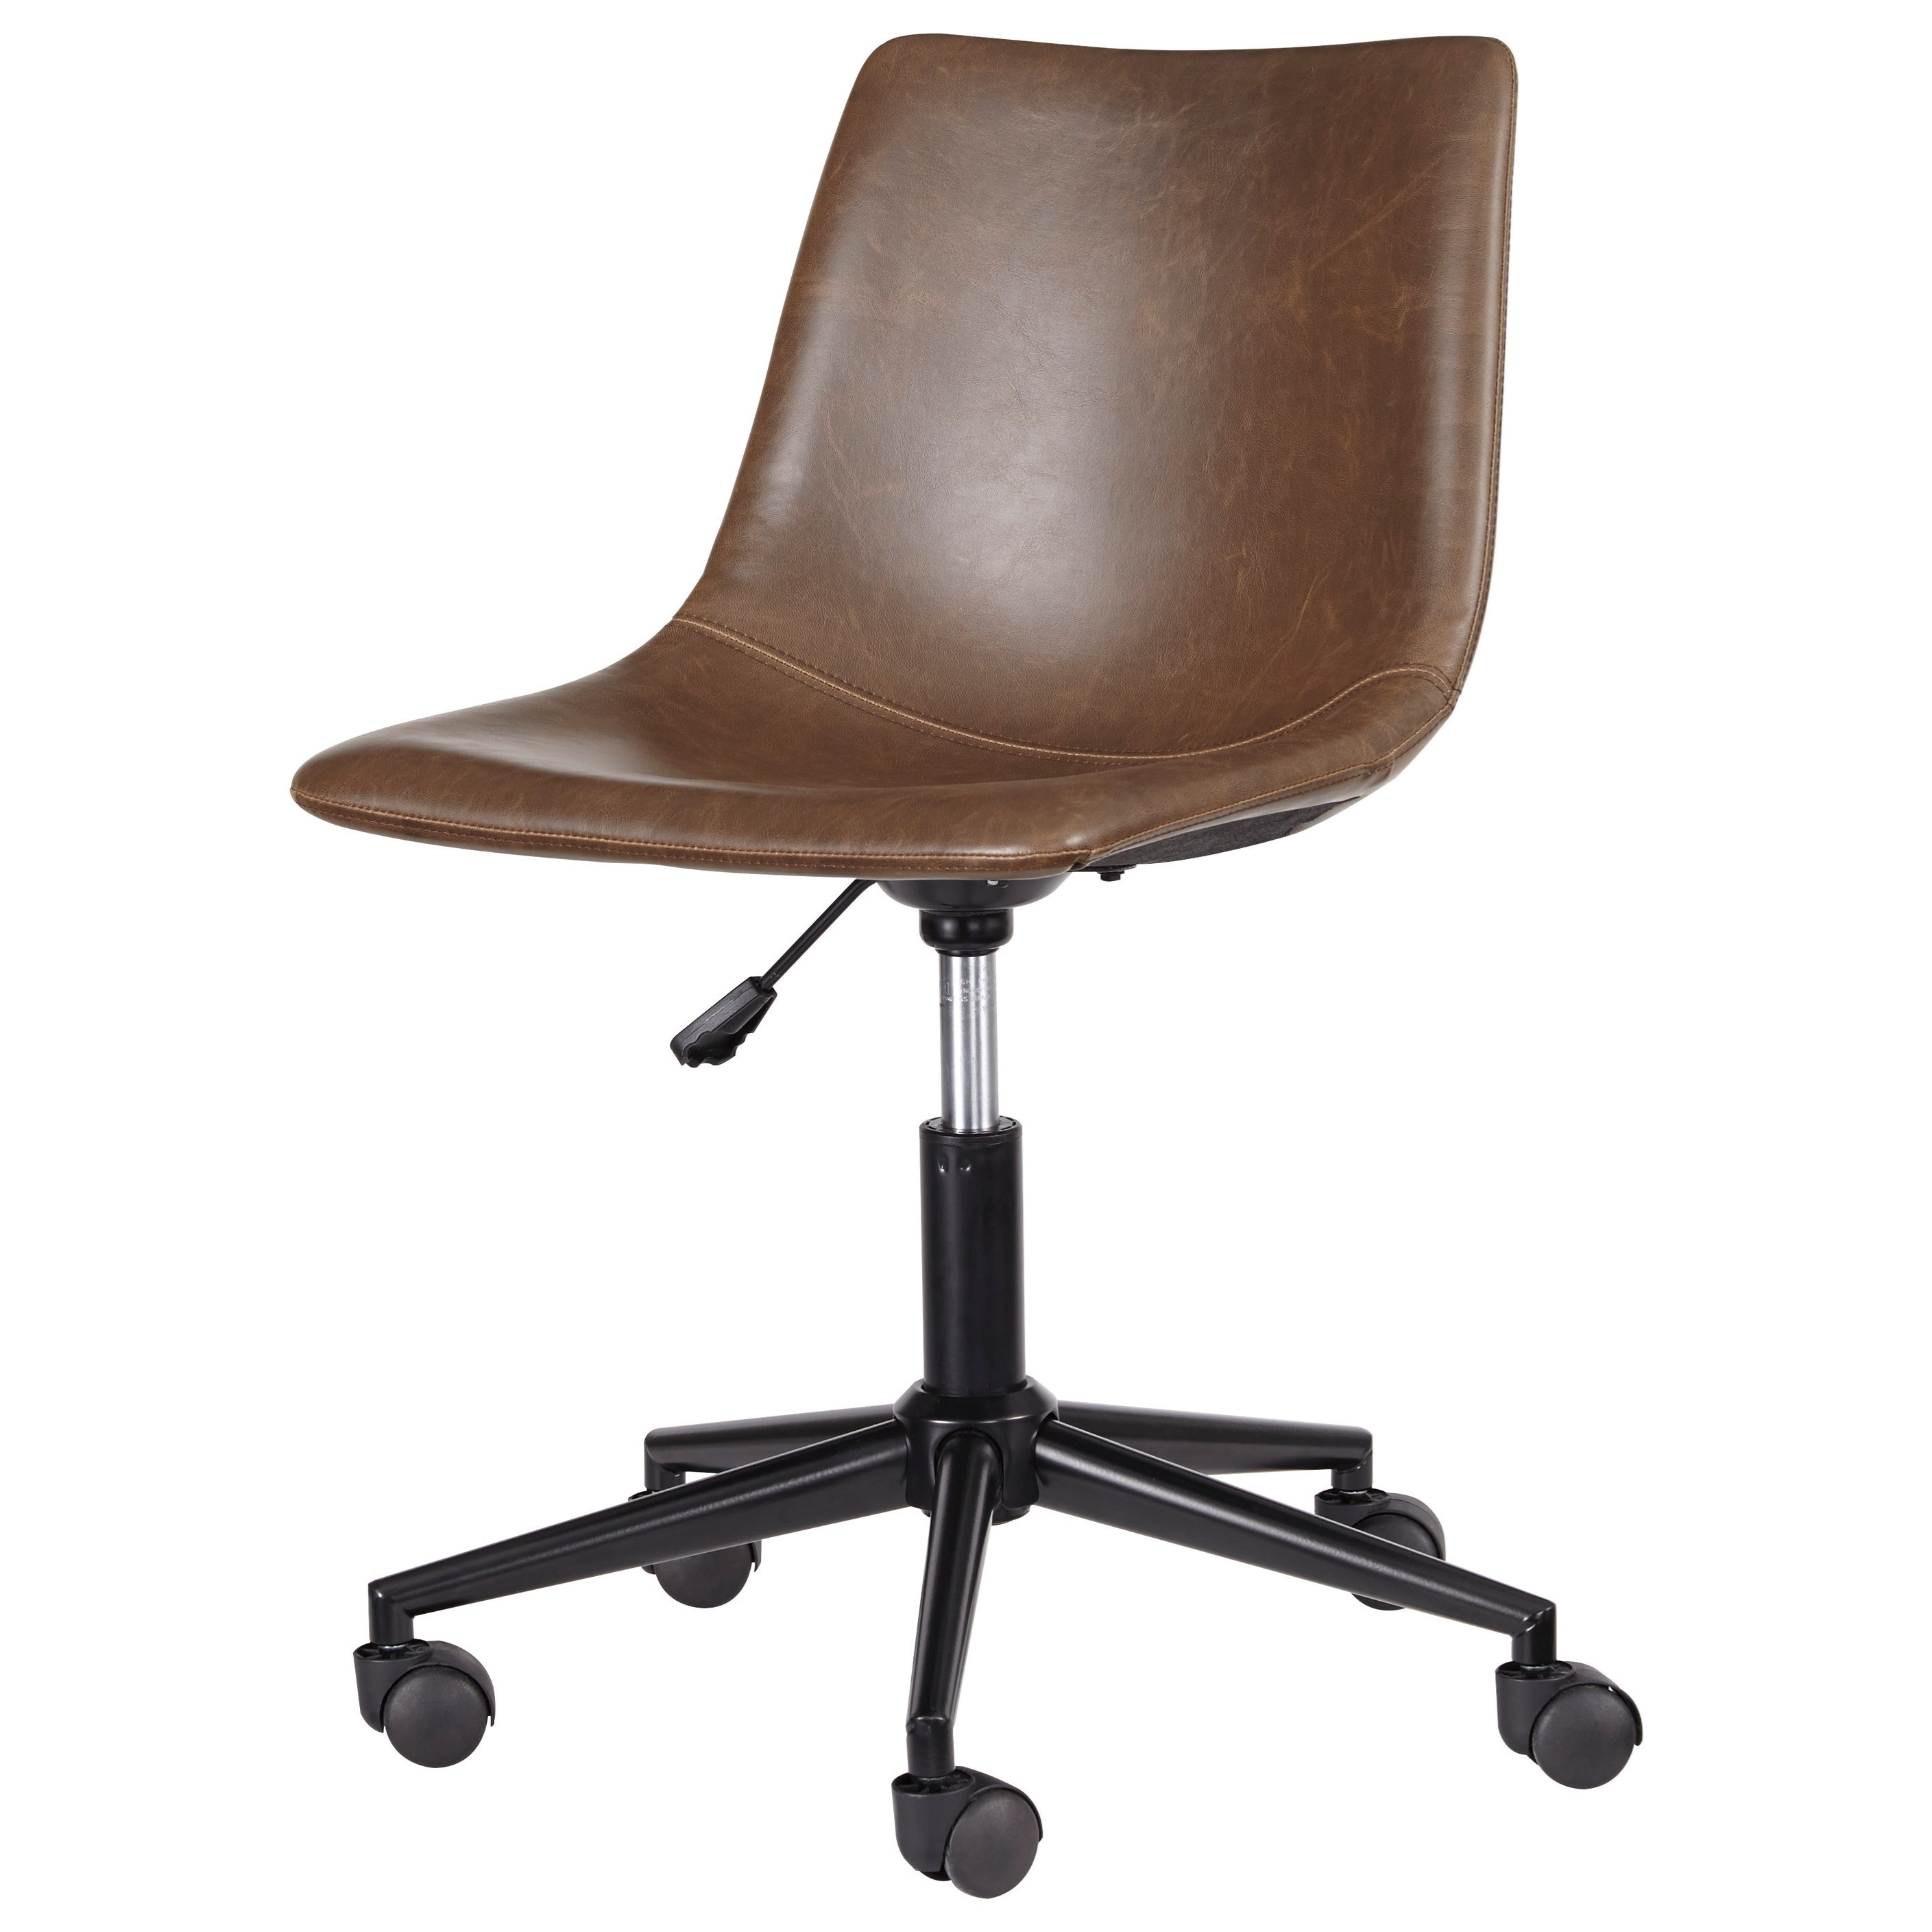 Ashley Signature Design Office Chair Program H200 01 Home Office Swivel Desk Chair In Brown Faux Leather Dunk Bright Furniture Office Task Chairs